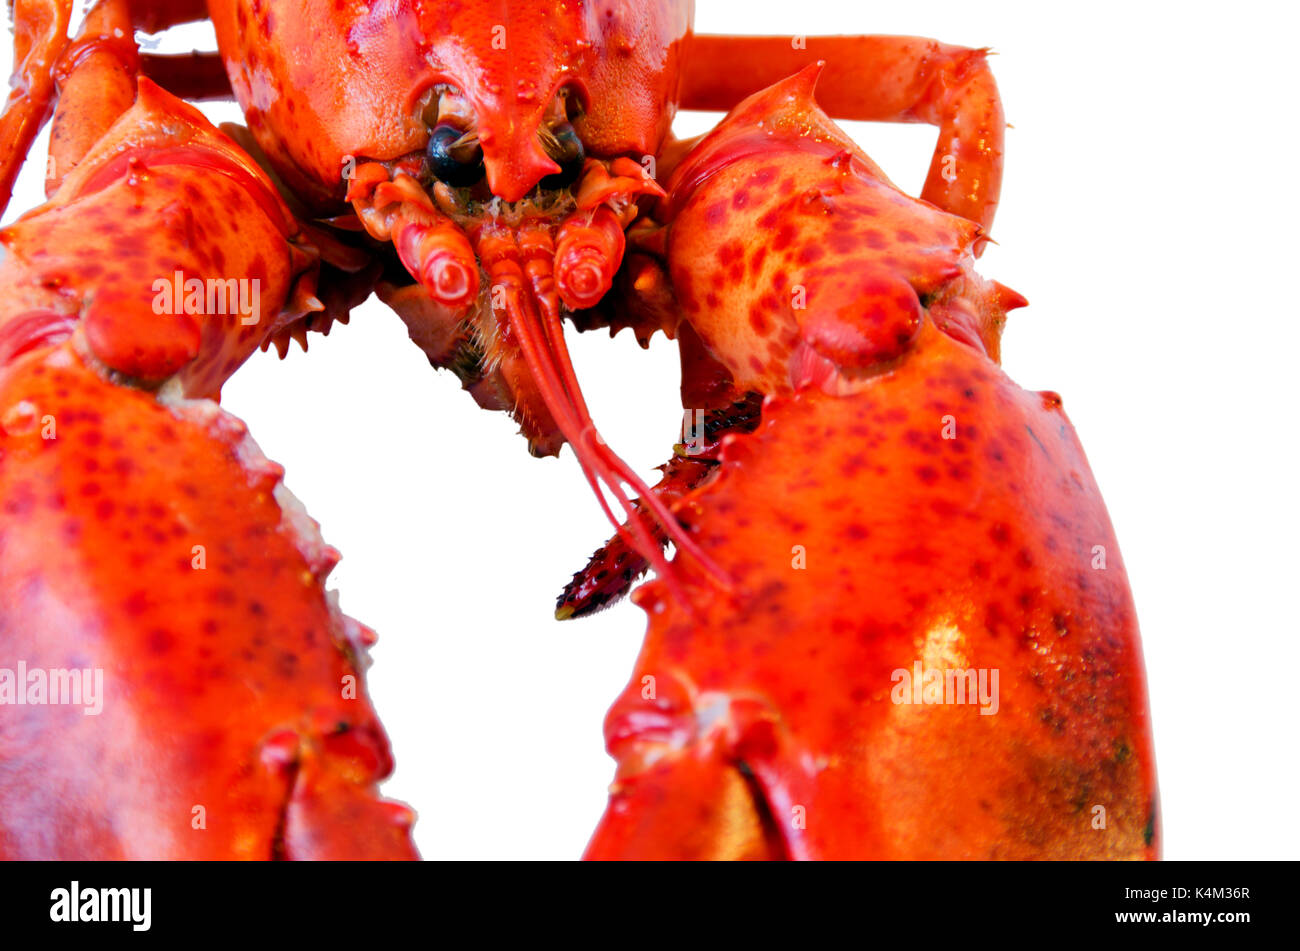 Cooked Lobster Isolated On White Background Stock Photo Royalty